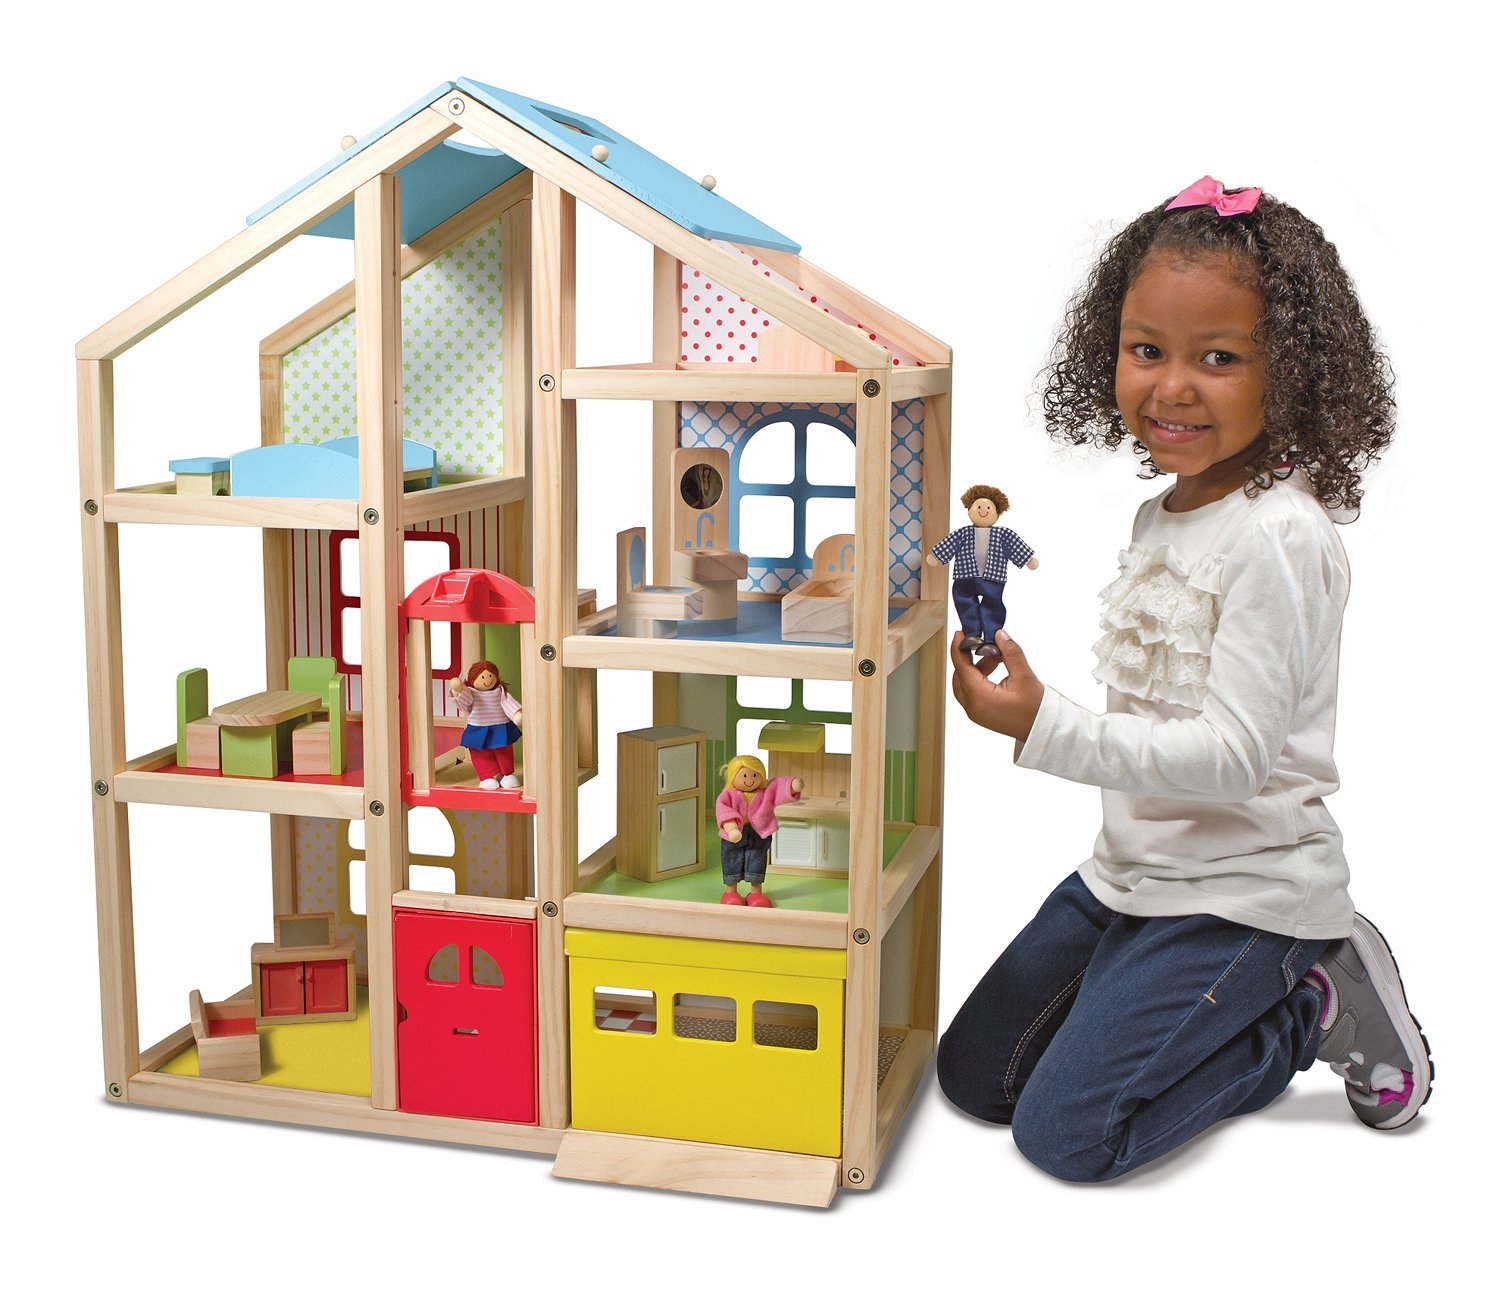 Top 9 Best Doll Houses Review in 2020